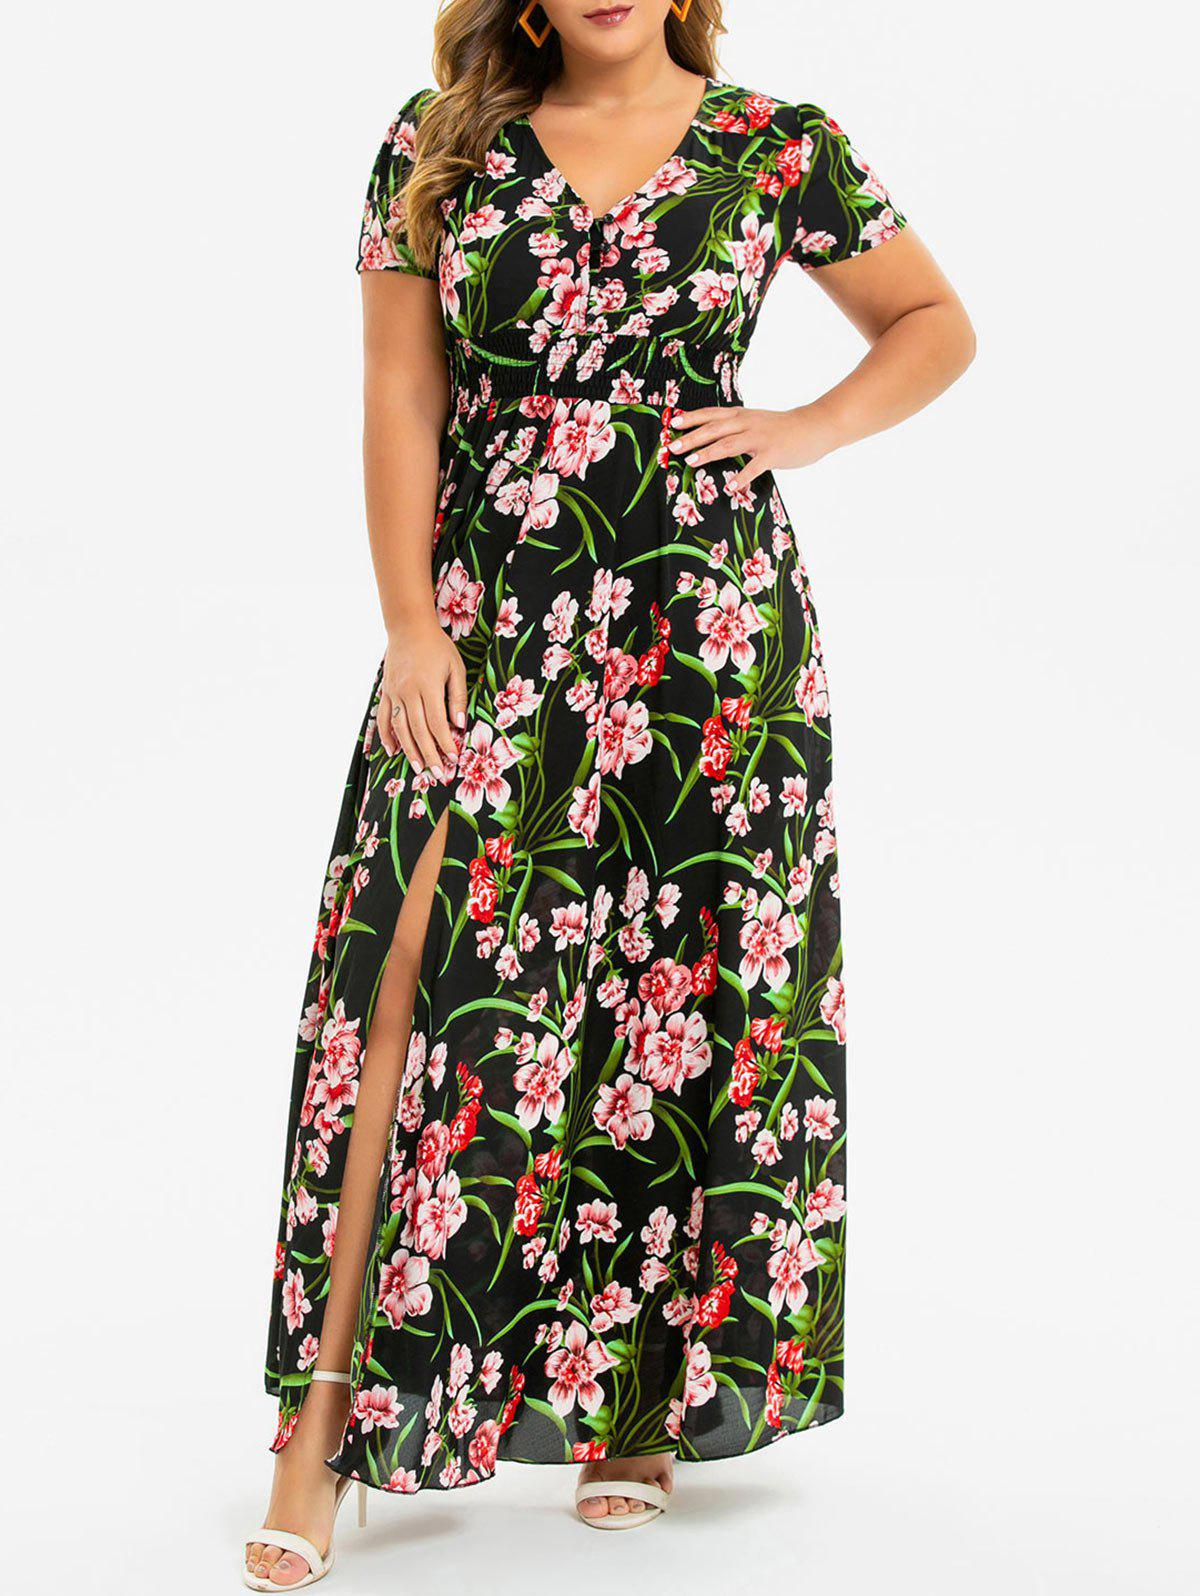 Floral Shirred Slit Plus Size Maxi Dress - BLACK 3X